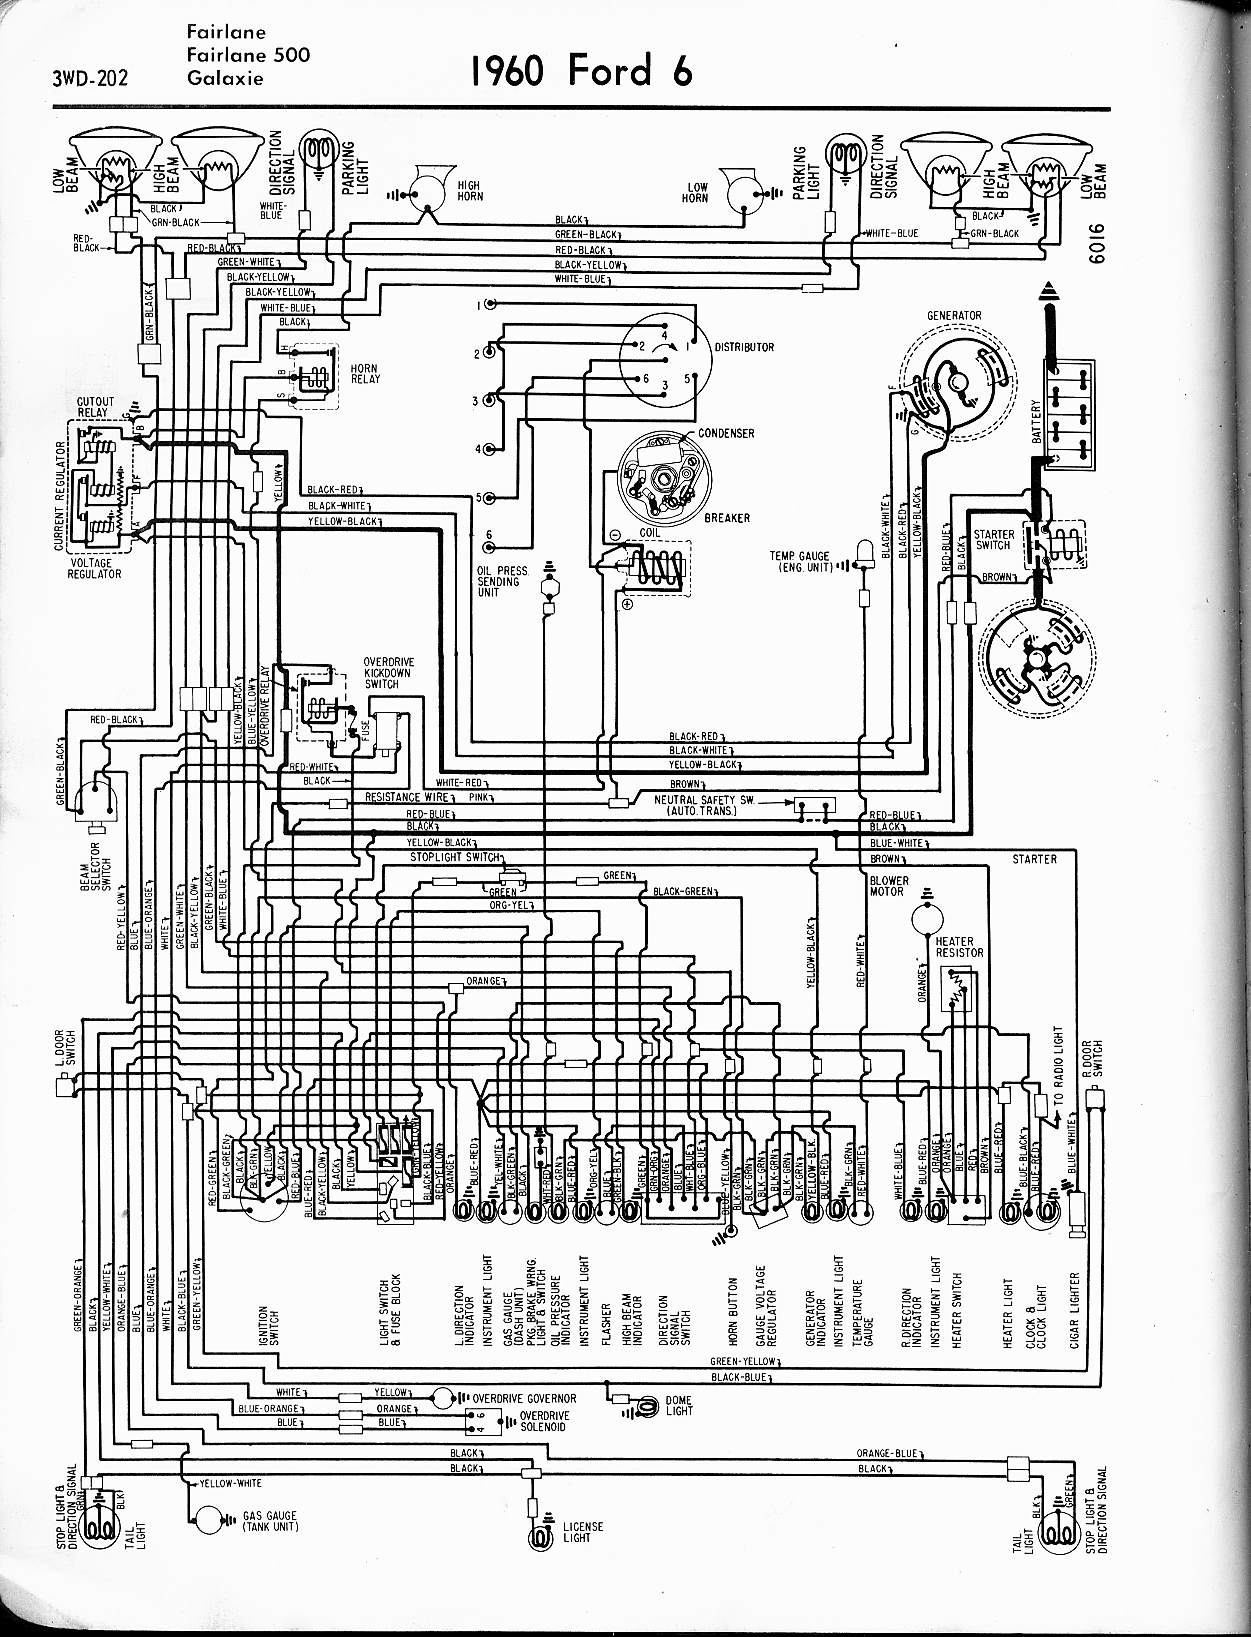 [SCHEMATICS_4HG]  9C578D 1966 Ford F100 Engine Manual | Wiring Library | 1966 Ford F100 Engine Wiring Diagram Free Picture |  | Wiring Library